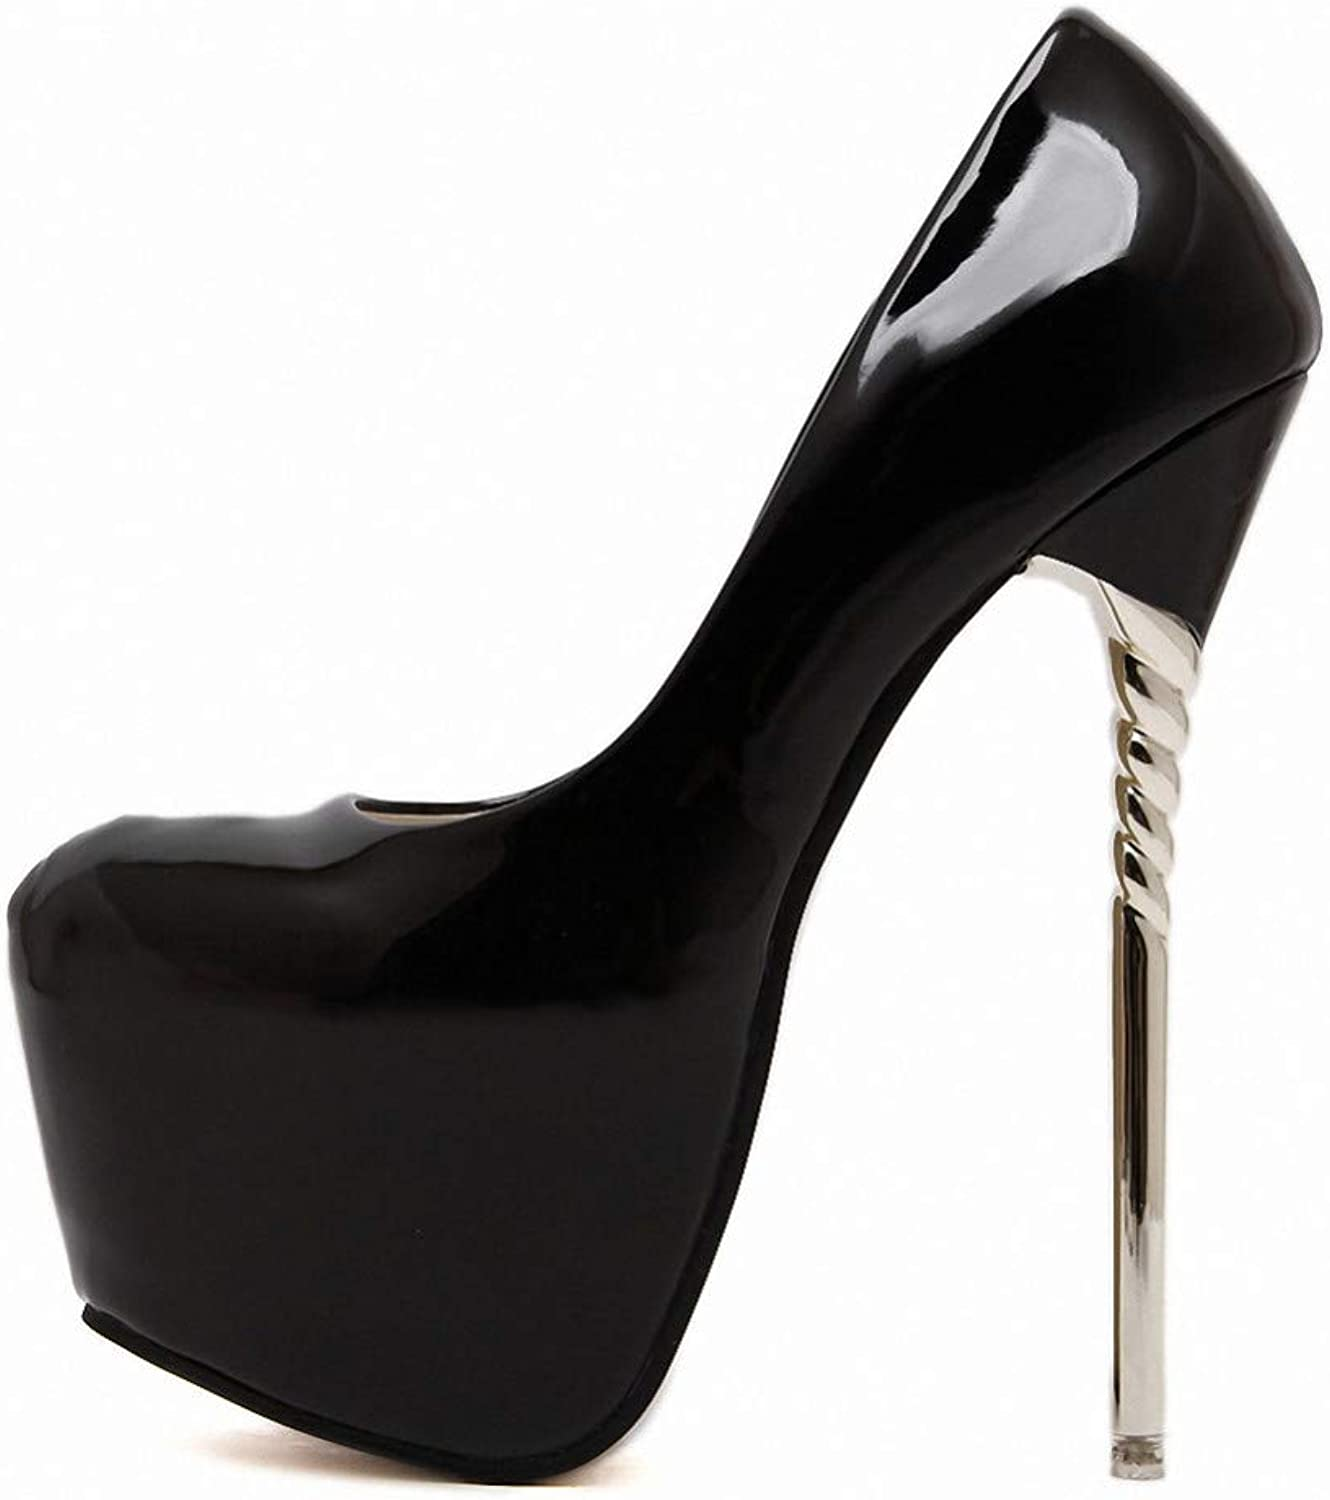 JQfashion Ladies'High-Heeled shoes Lacquered Leather Single shoes High Waterproof Platform Source Shallow Sexy Nightclub 16Cm